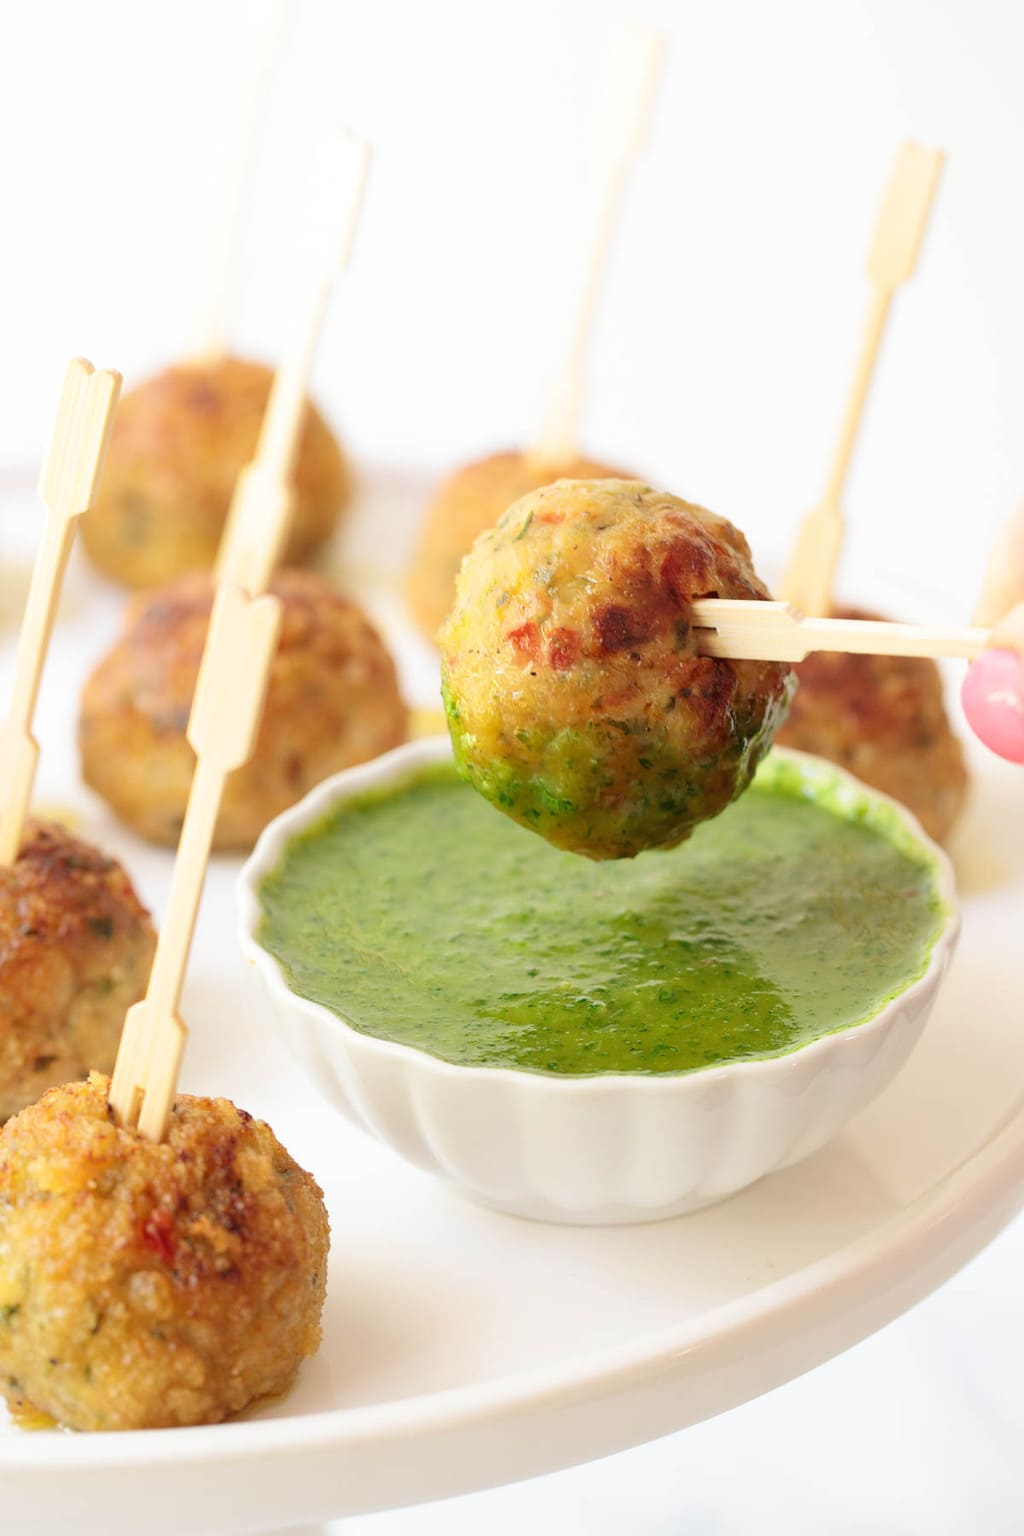 Photo of a white platter of Vietnamese Chicken Meatballs with one being dipped into a dish of Lemongrass Cilantro Dipping Sauce.